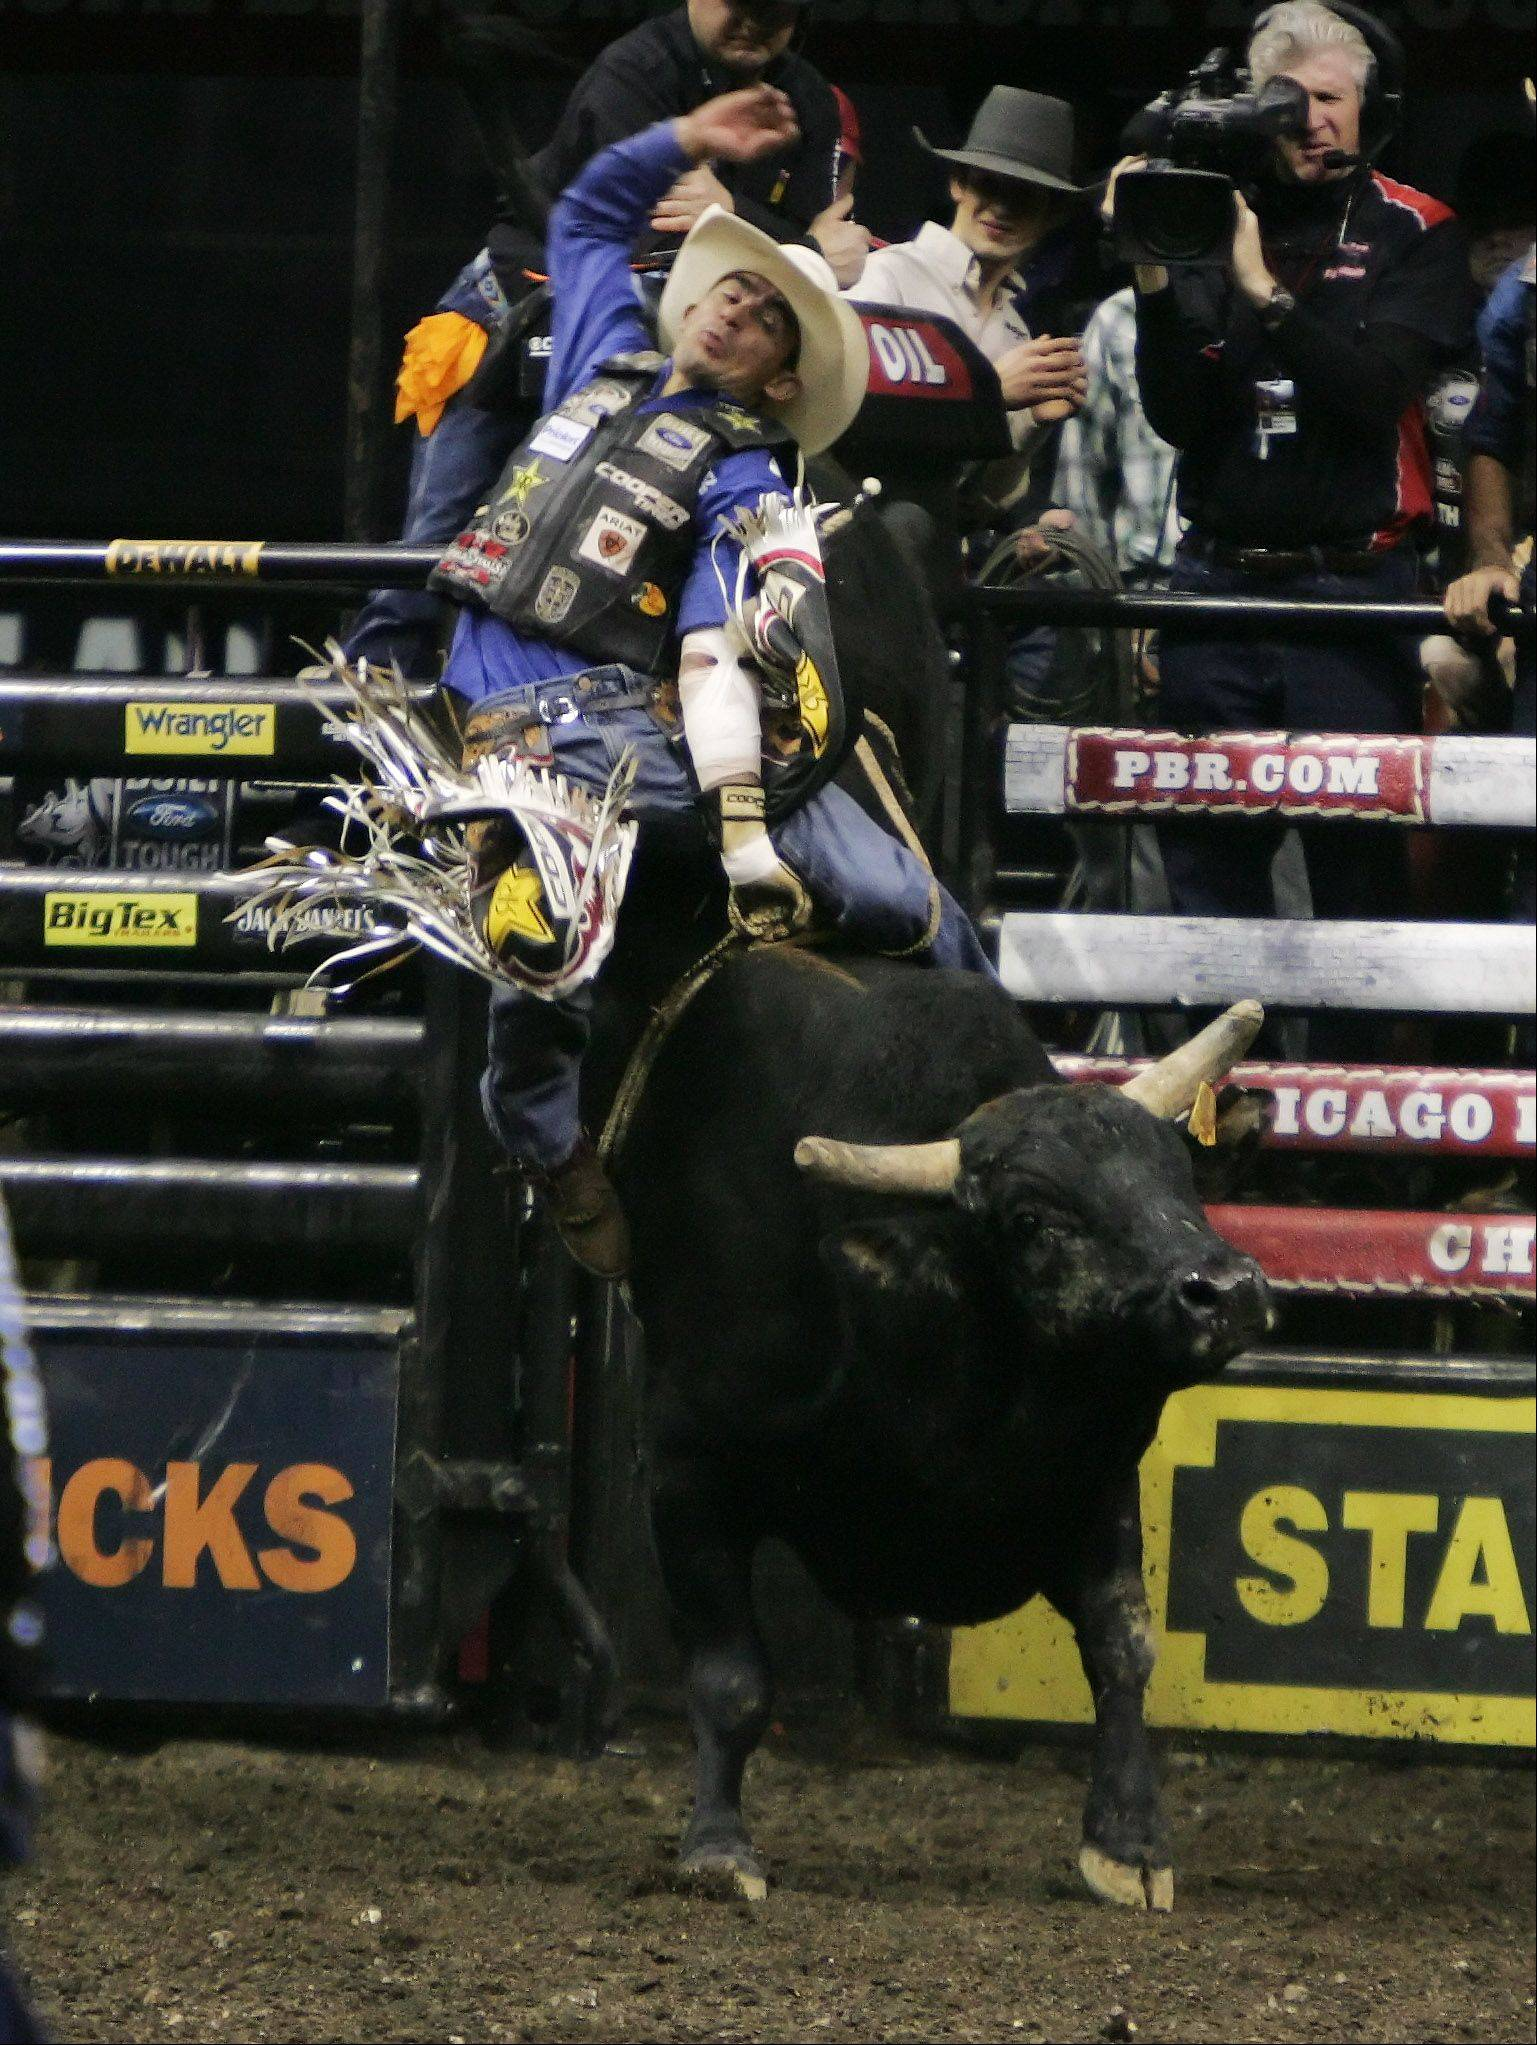 Renato Nunes rides Santiago during the Professional Bull Riders Chicago Invitational Sunday at the Allstate Arena in Rosemont. Riders from around the world competed in the arena by riding 2,000-pound bulls.